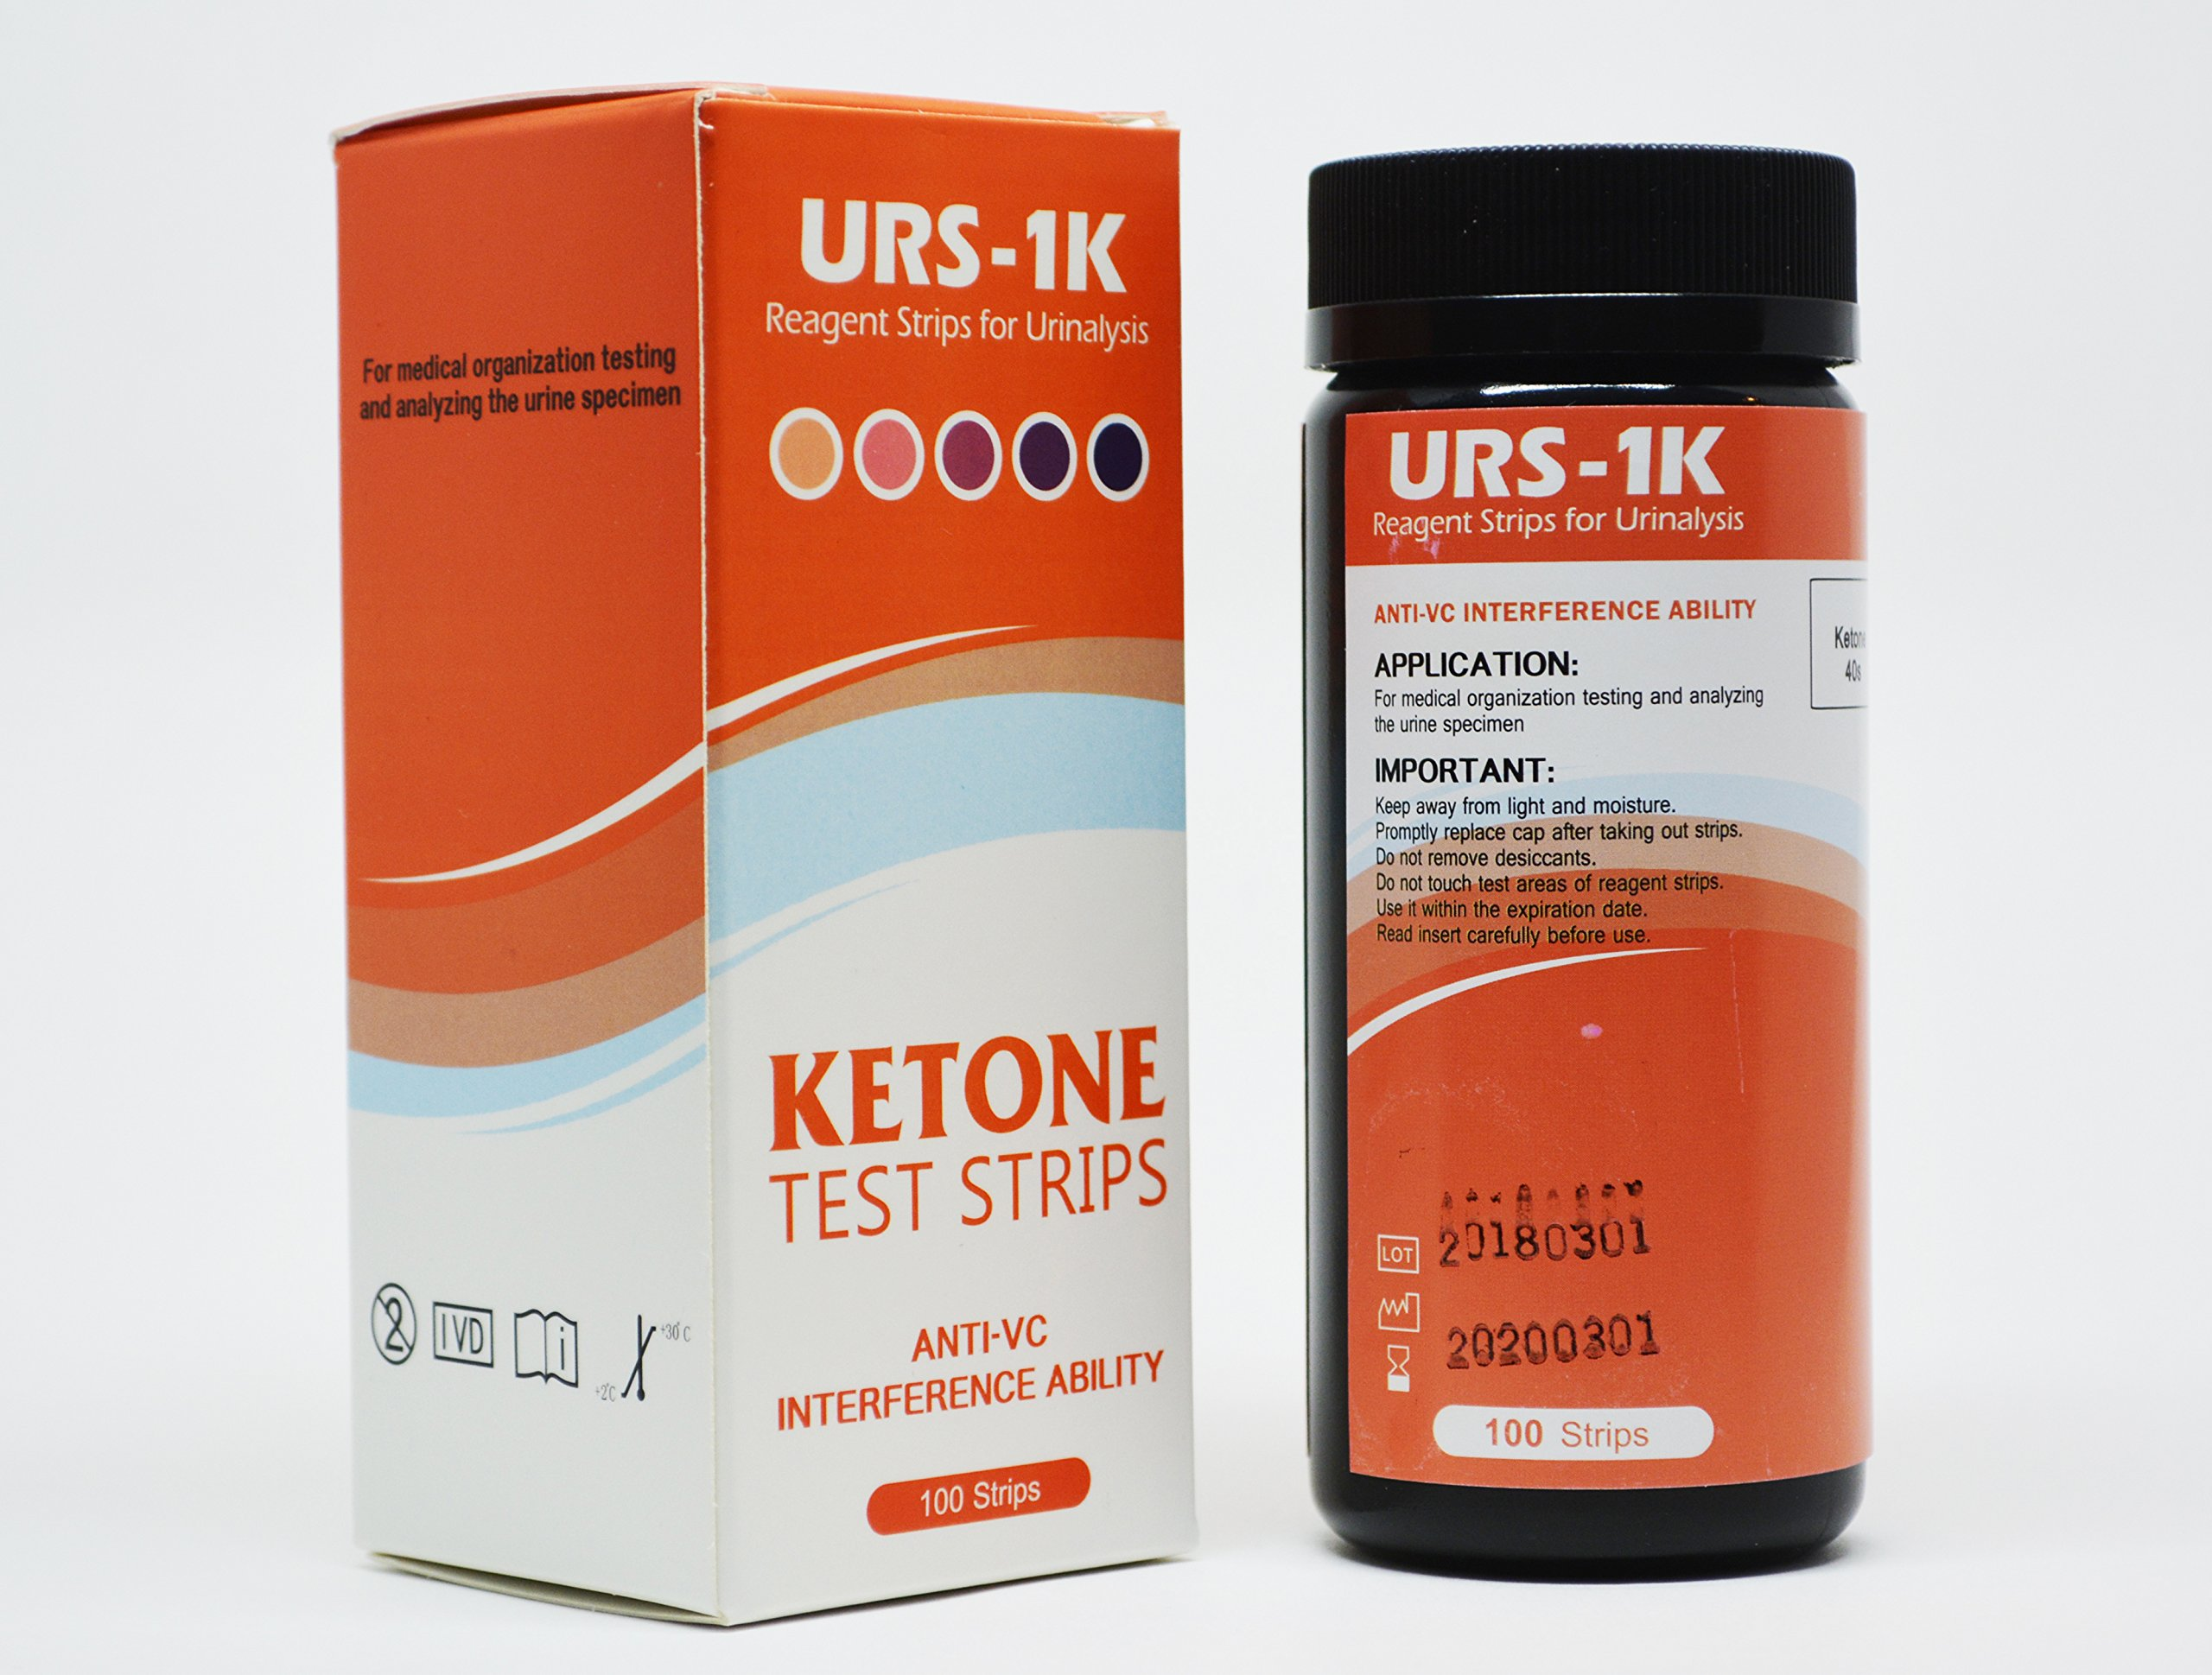 Ketone Test Strips for Ketogenic or HCG Diet - FRESH STOCK - Accurately Measure Your Fat Burning Ketosis Levels in Seconds -100 Strips - 1 pack - 2 pack - 3 pack - 5 pack - 10 pack (Pack of 10) by TH-URS-1K